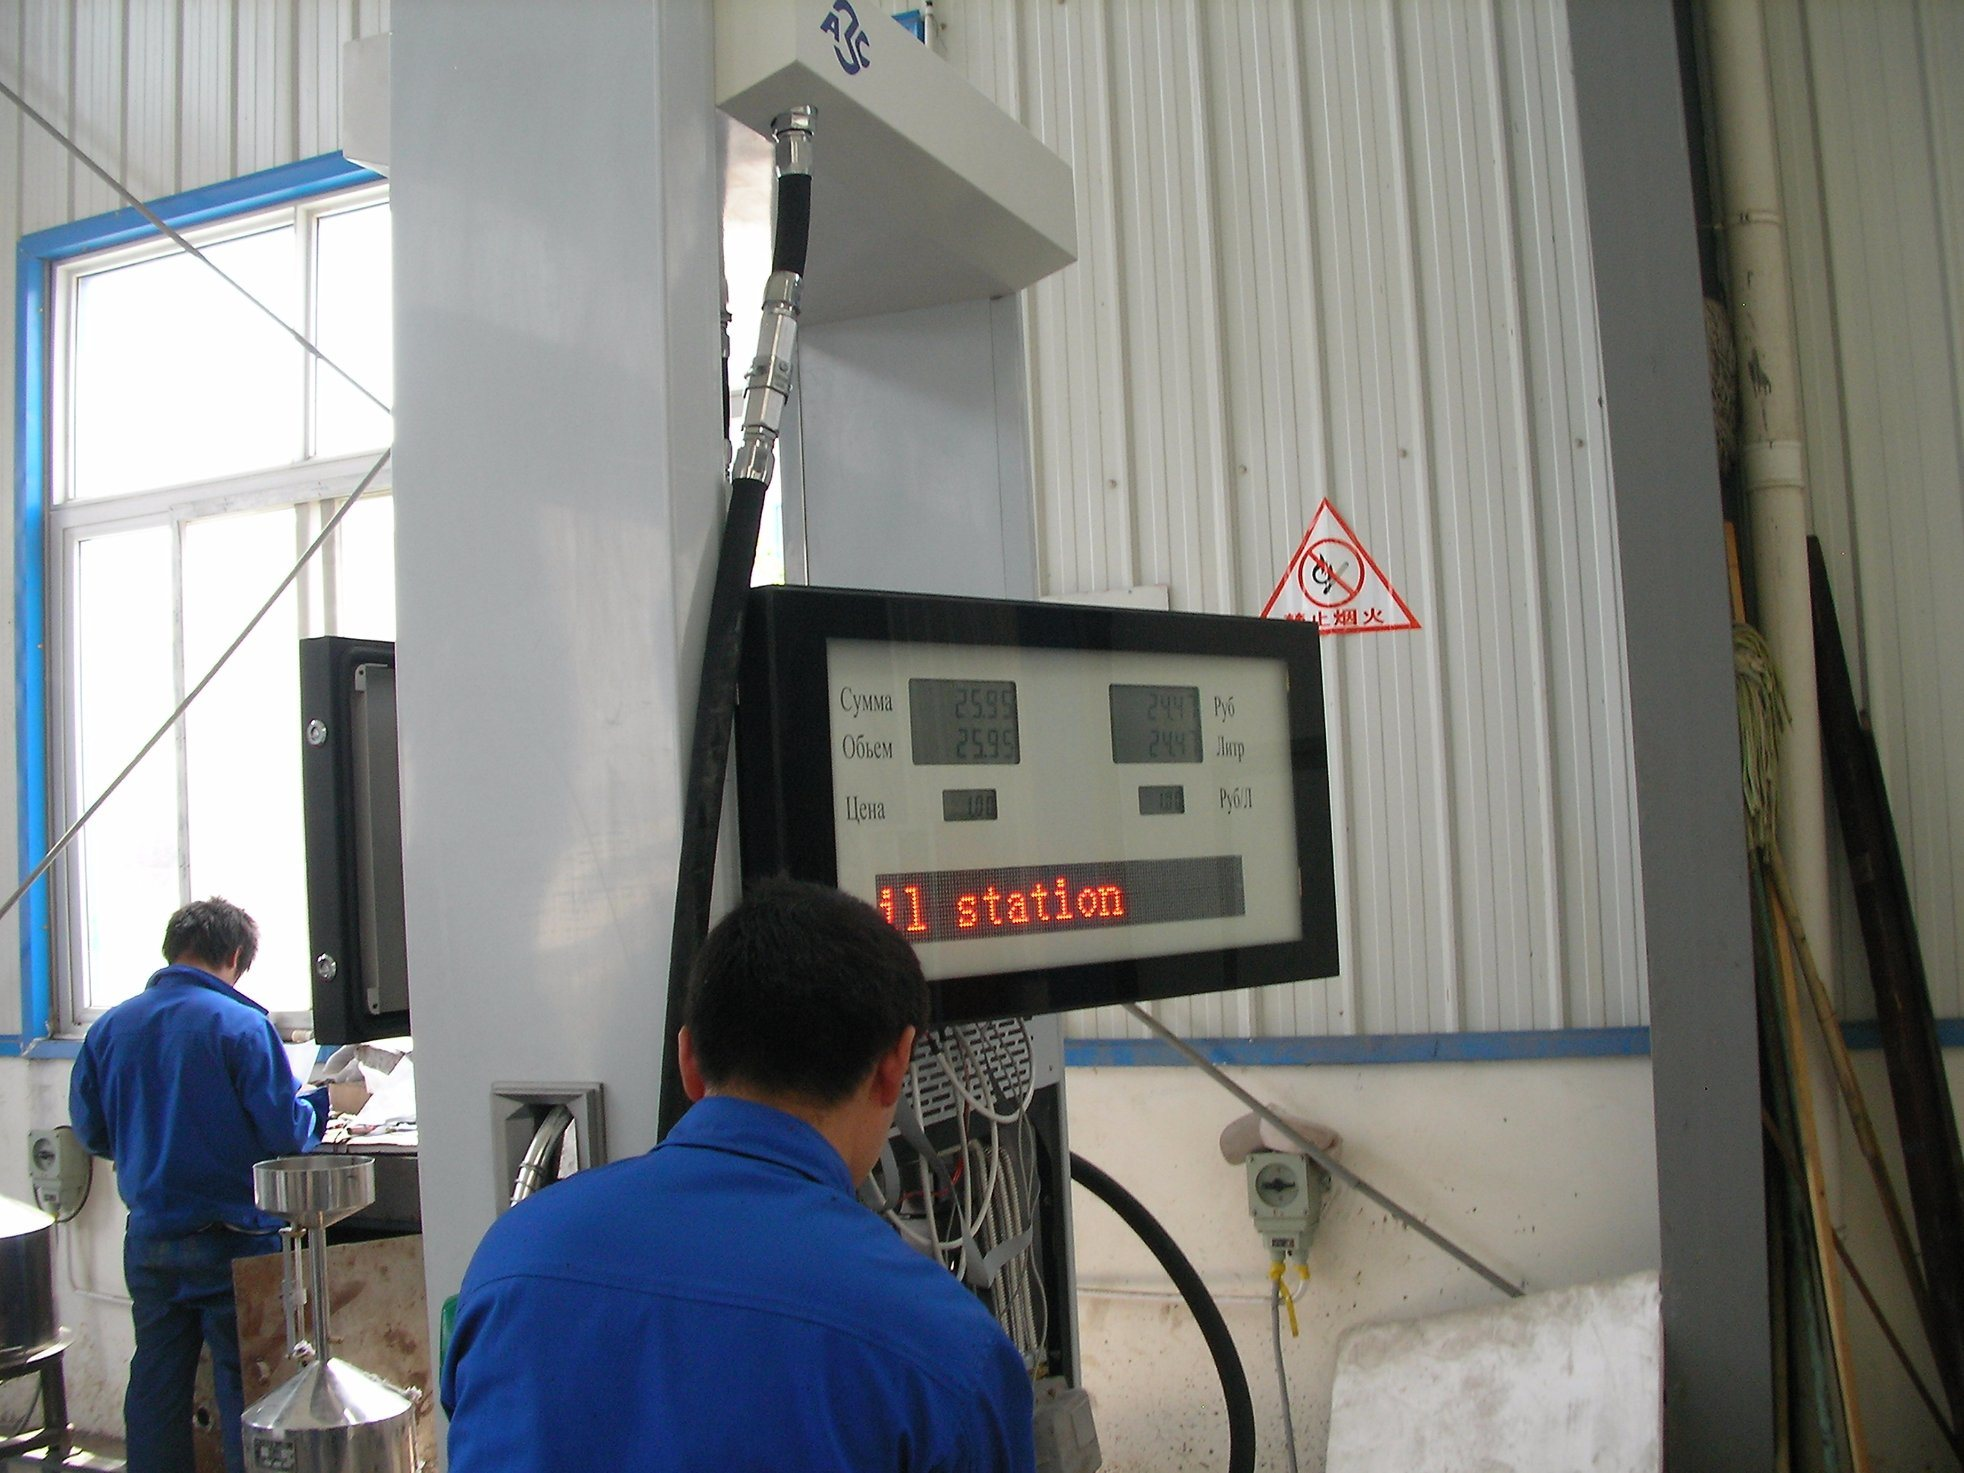 Two Nozzle Two Pump Oil Station Fuel Dispenser with LED